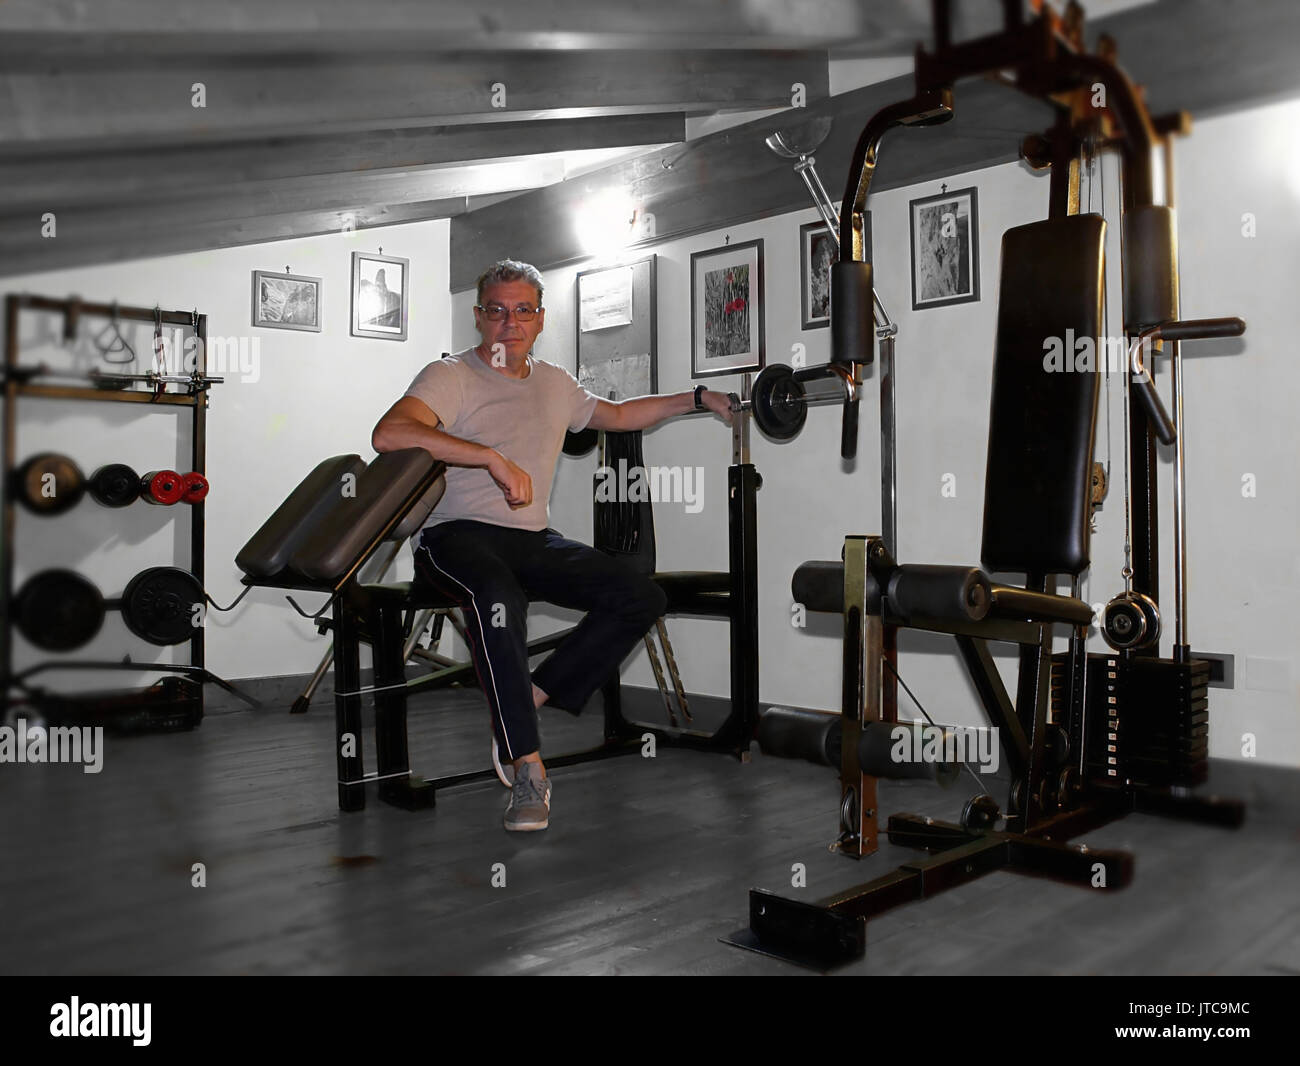 Home gym in the attic - Stock Image